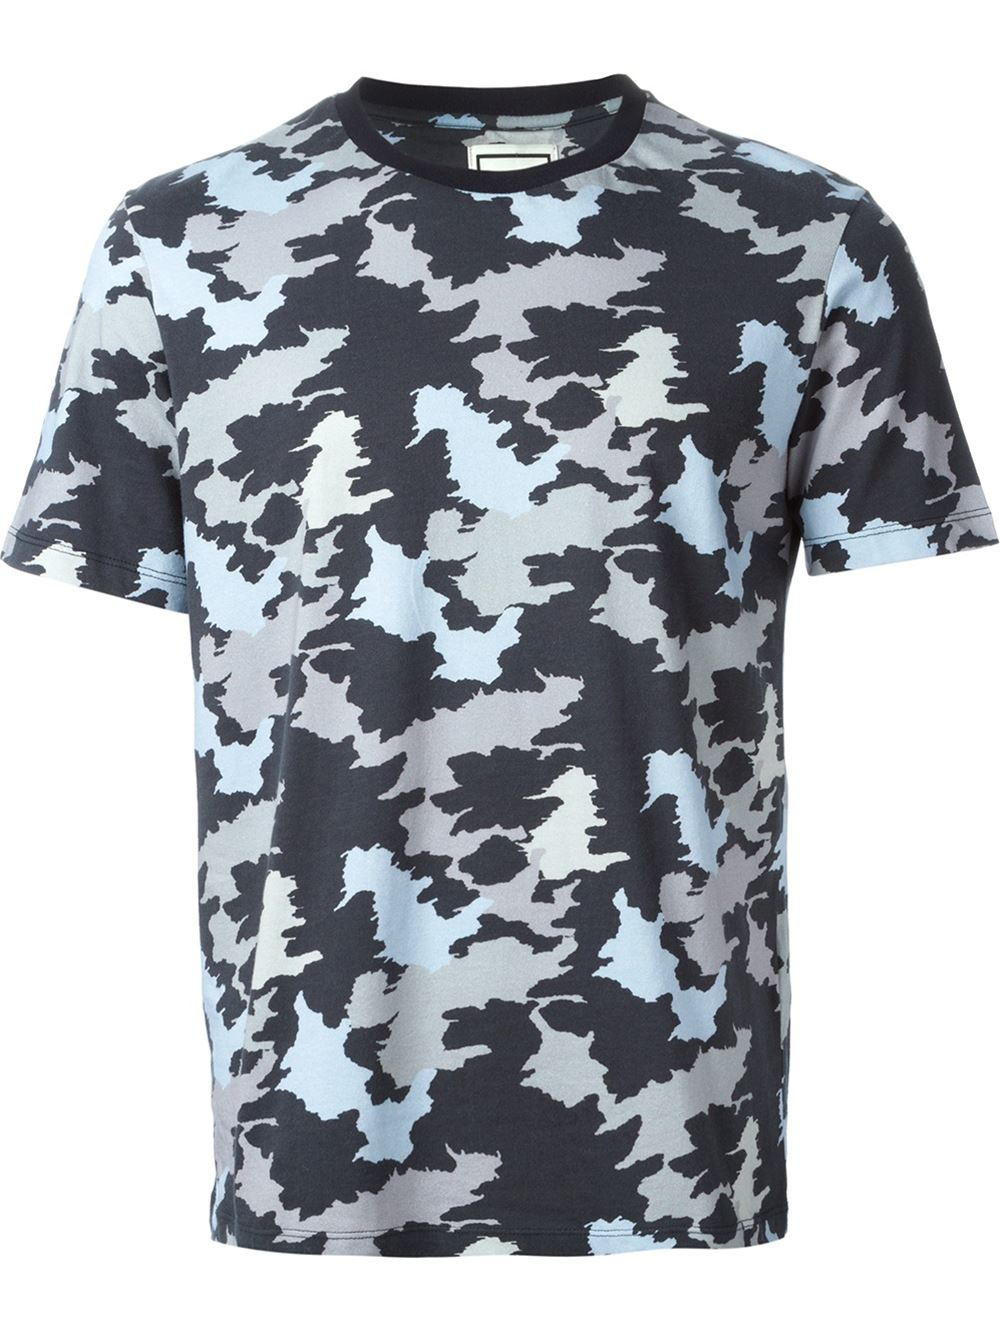 Wooyoungmi camouflage print t shirt in blue for men lyst for Camouflage t shirt printing